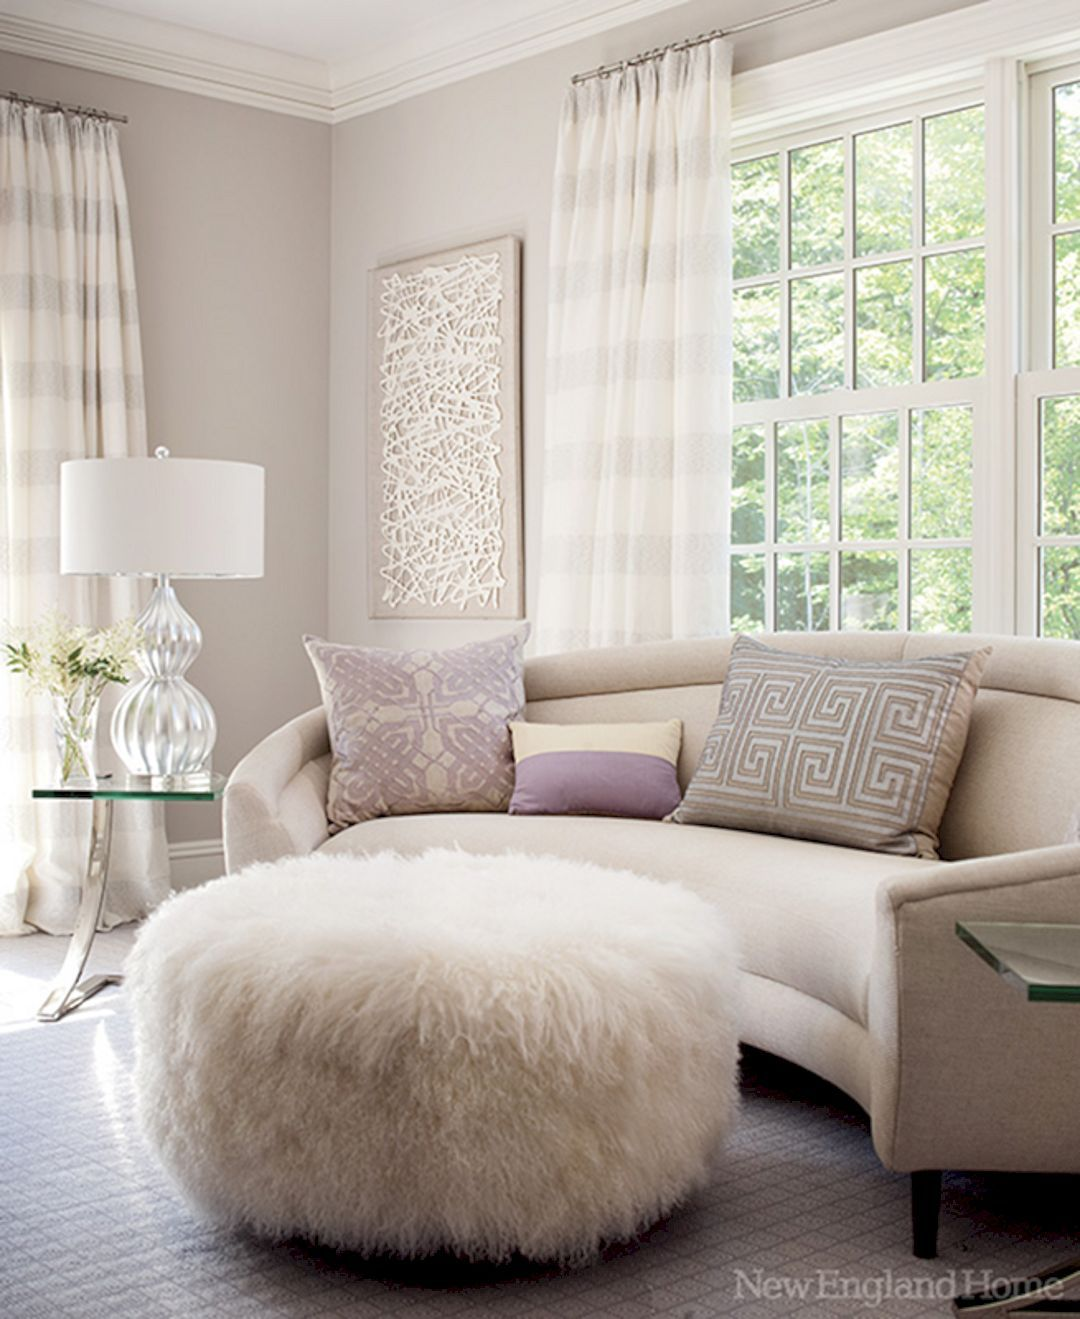 16 Inspiring Furniture Ideas for Your Master Bedroom ...